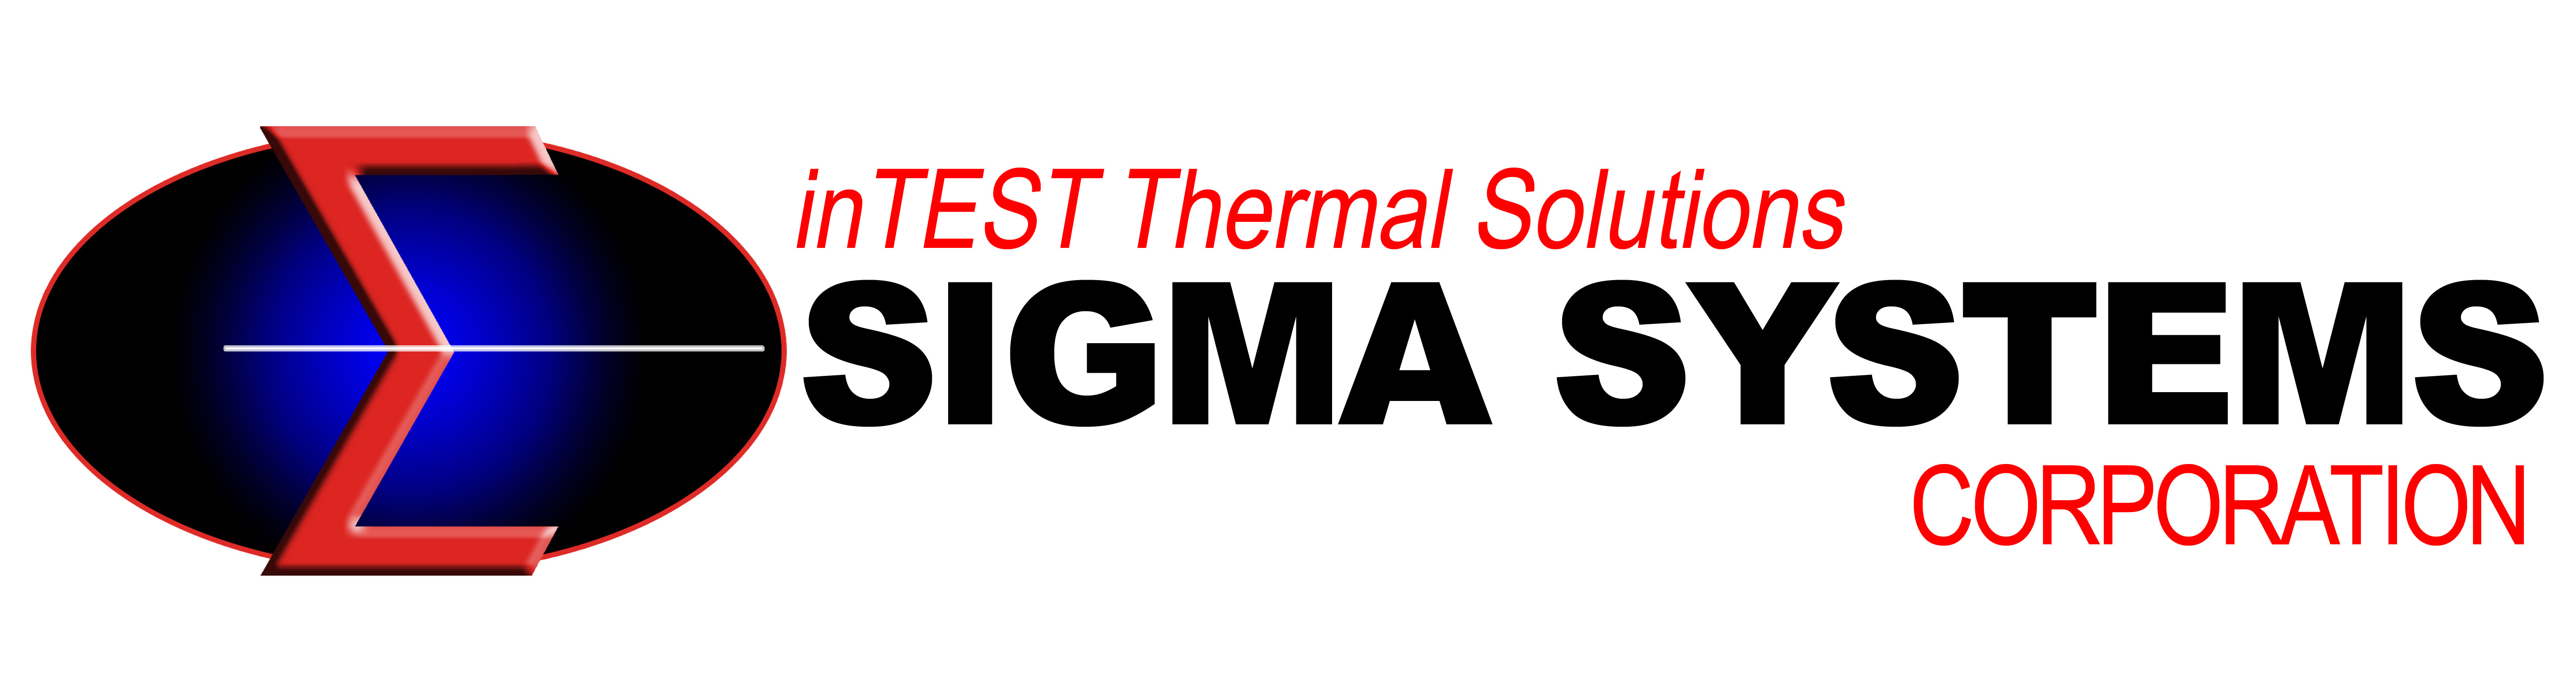 Sigma Systems(Thermal Platforms)